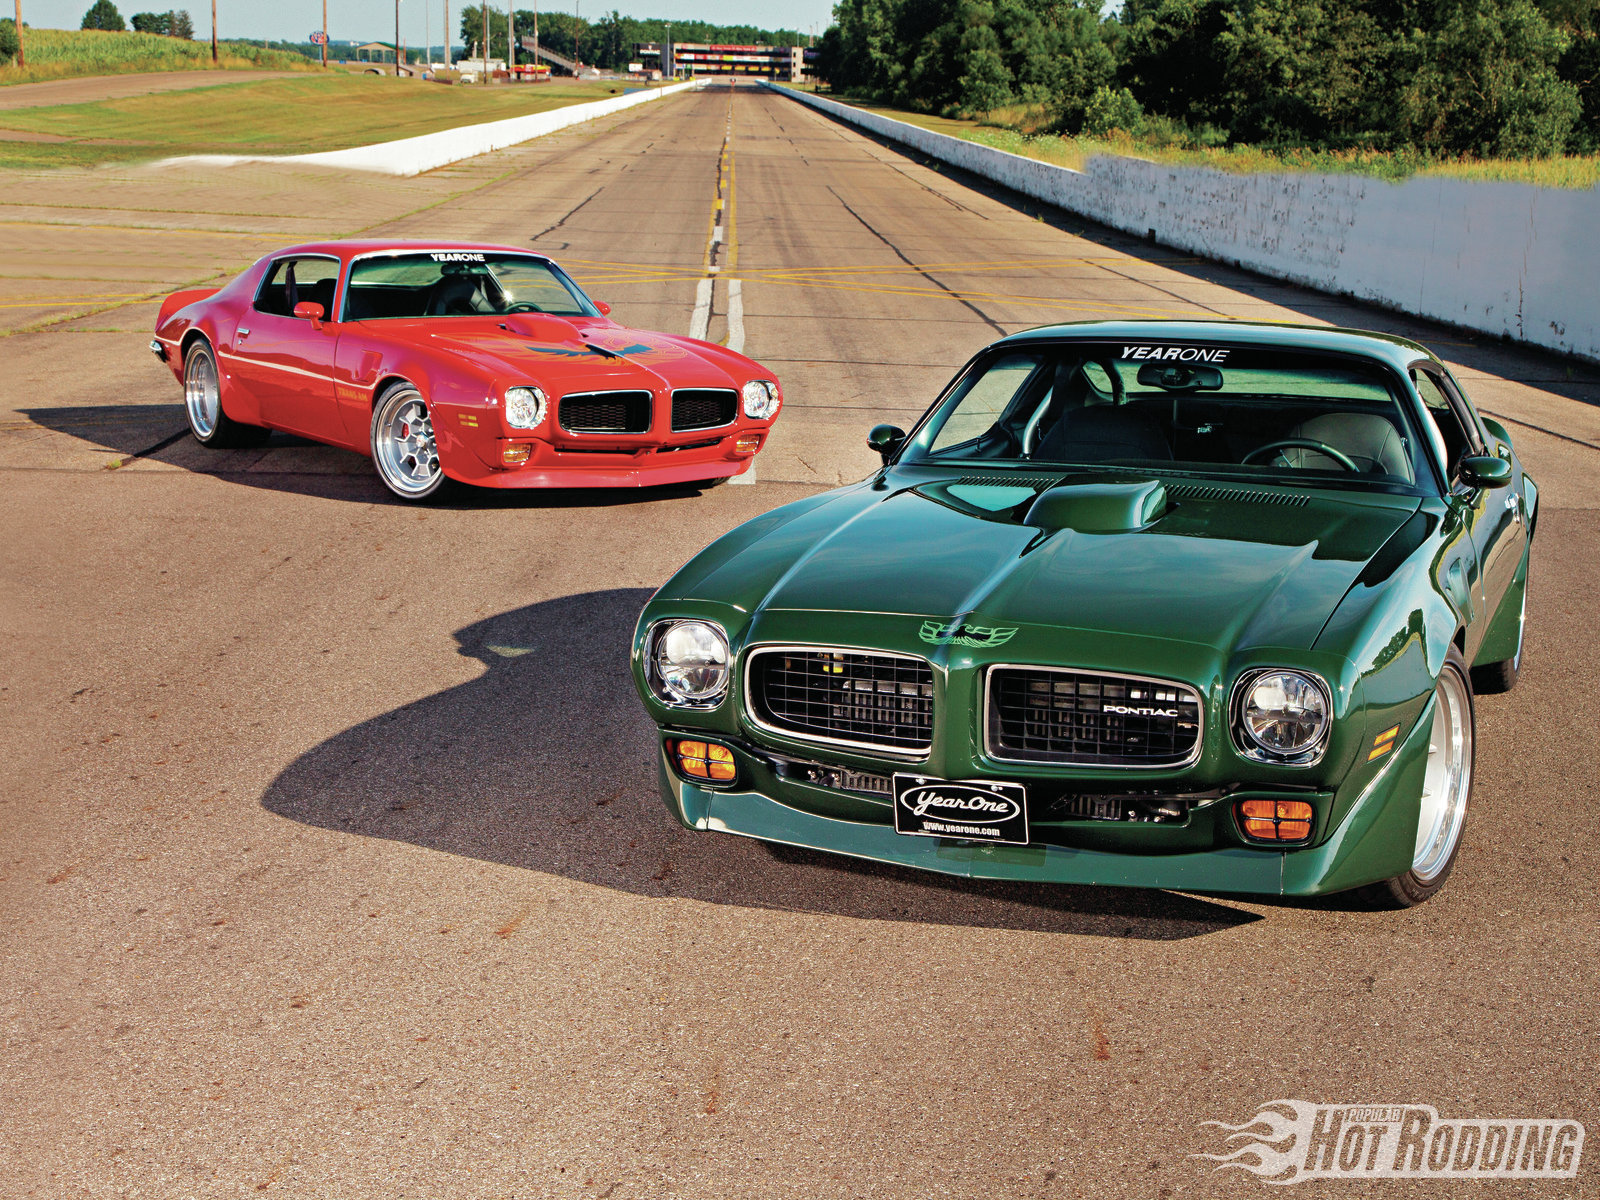 yearone trans am wallpaper - photo #19